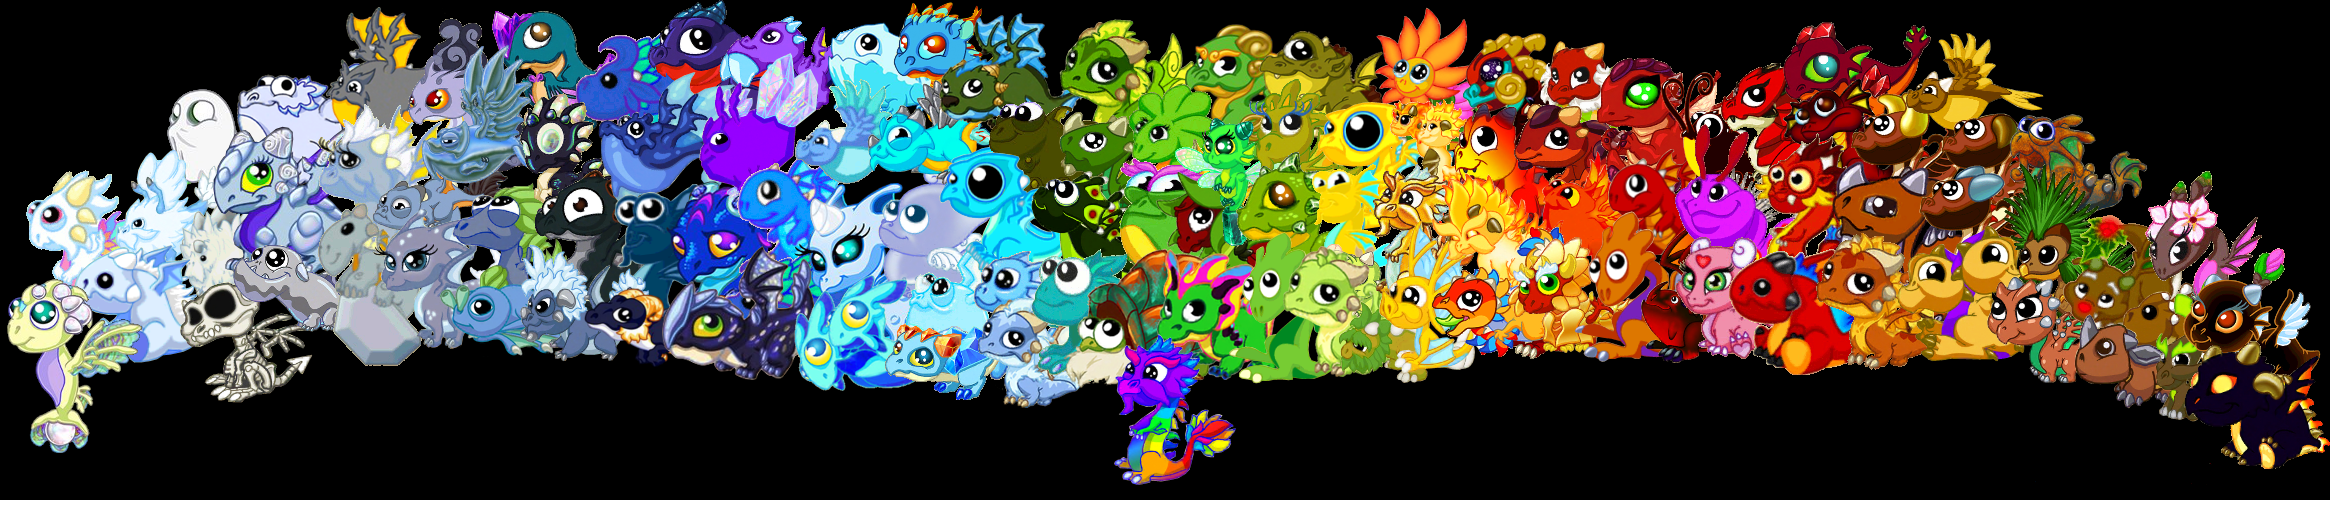 dragonvale breeding guide gemstone dragons